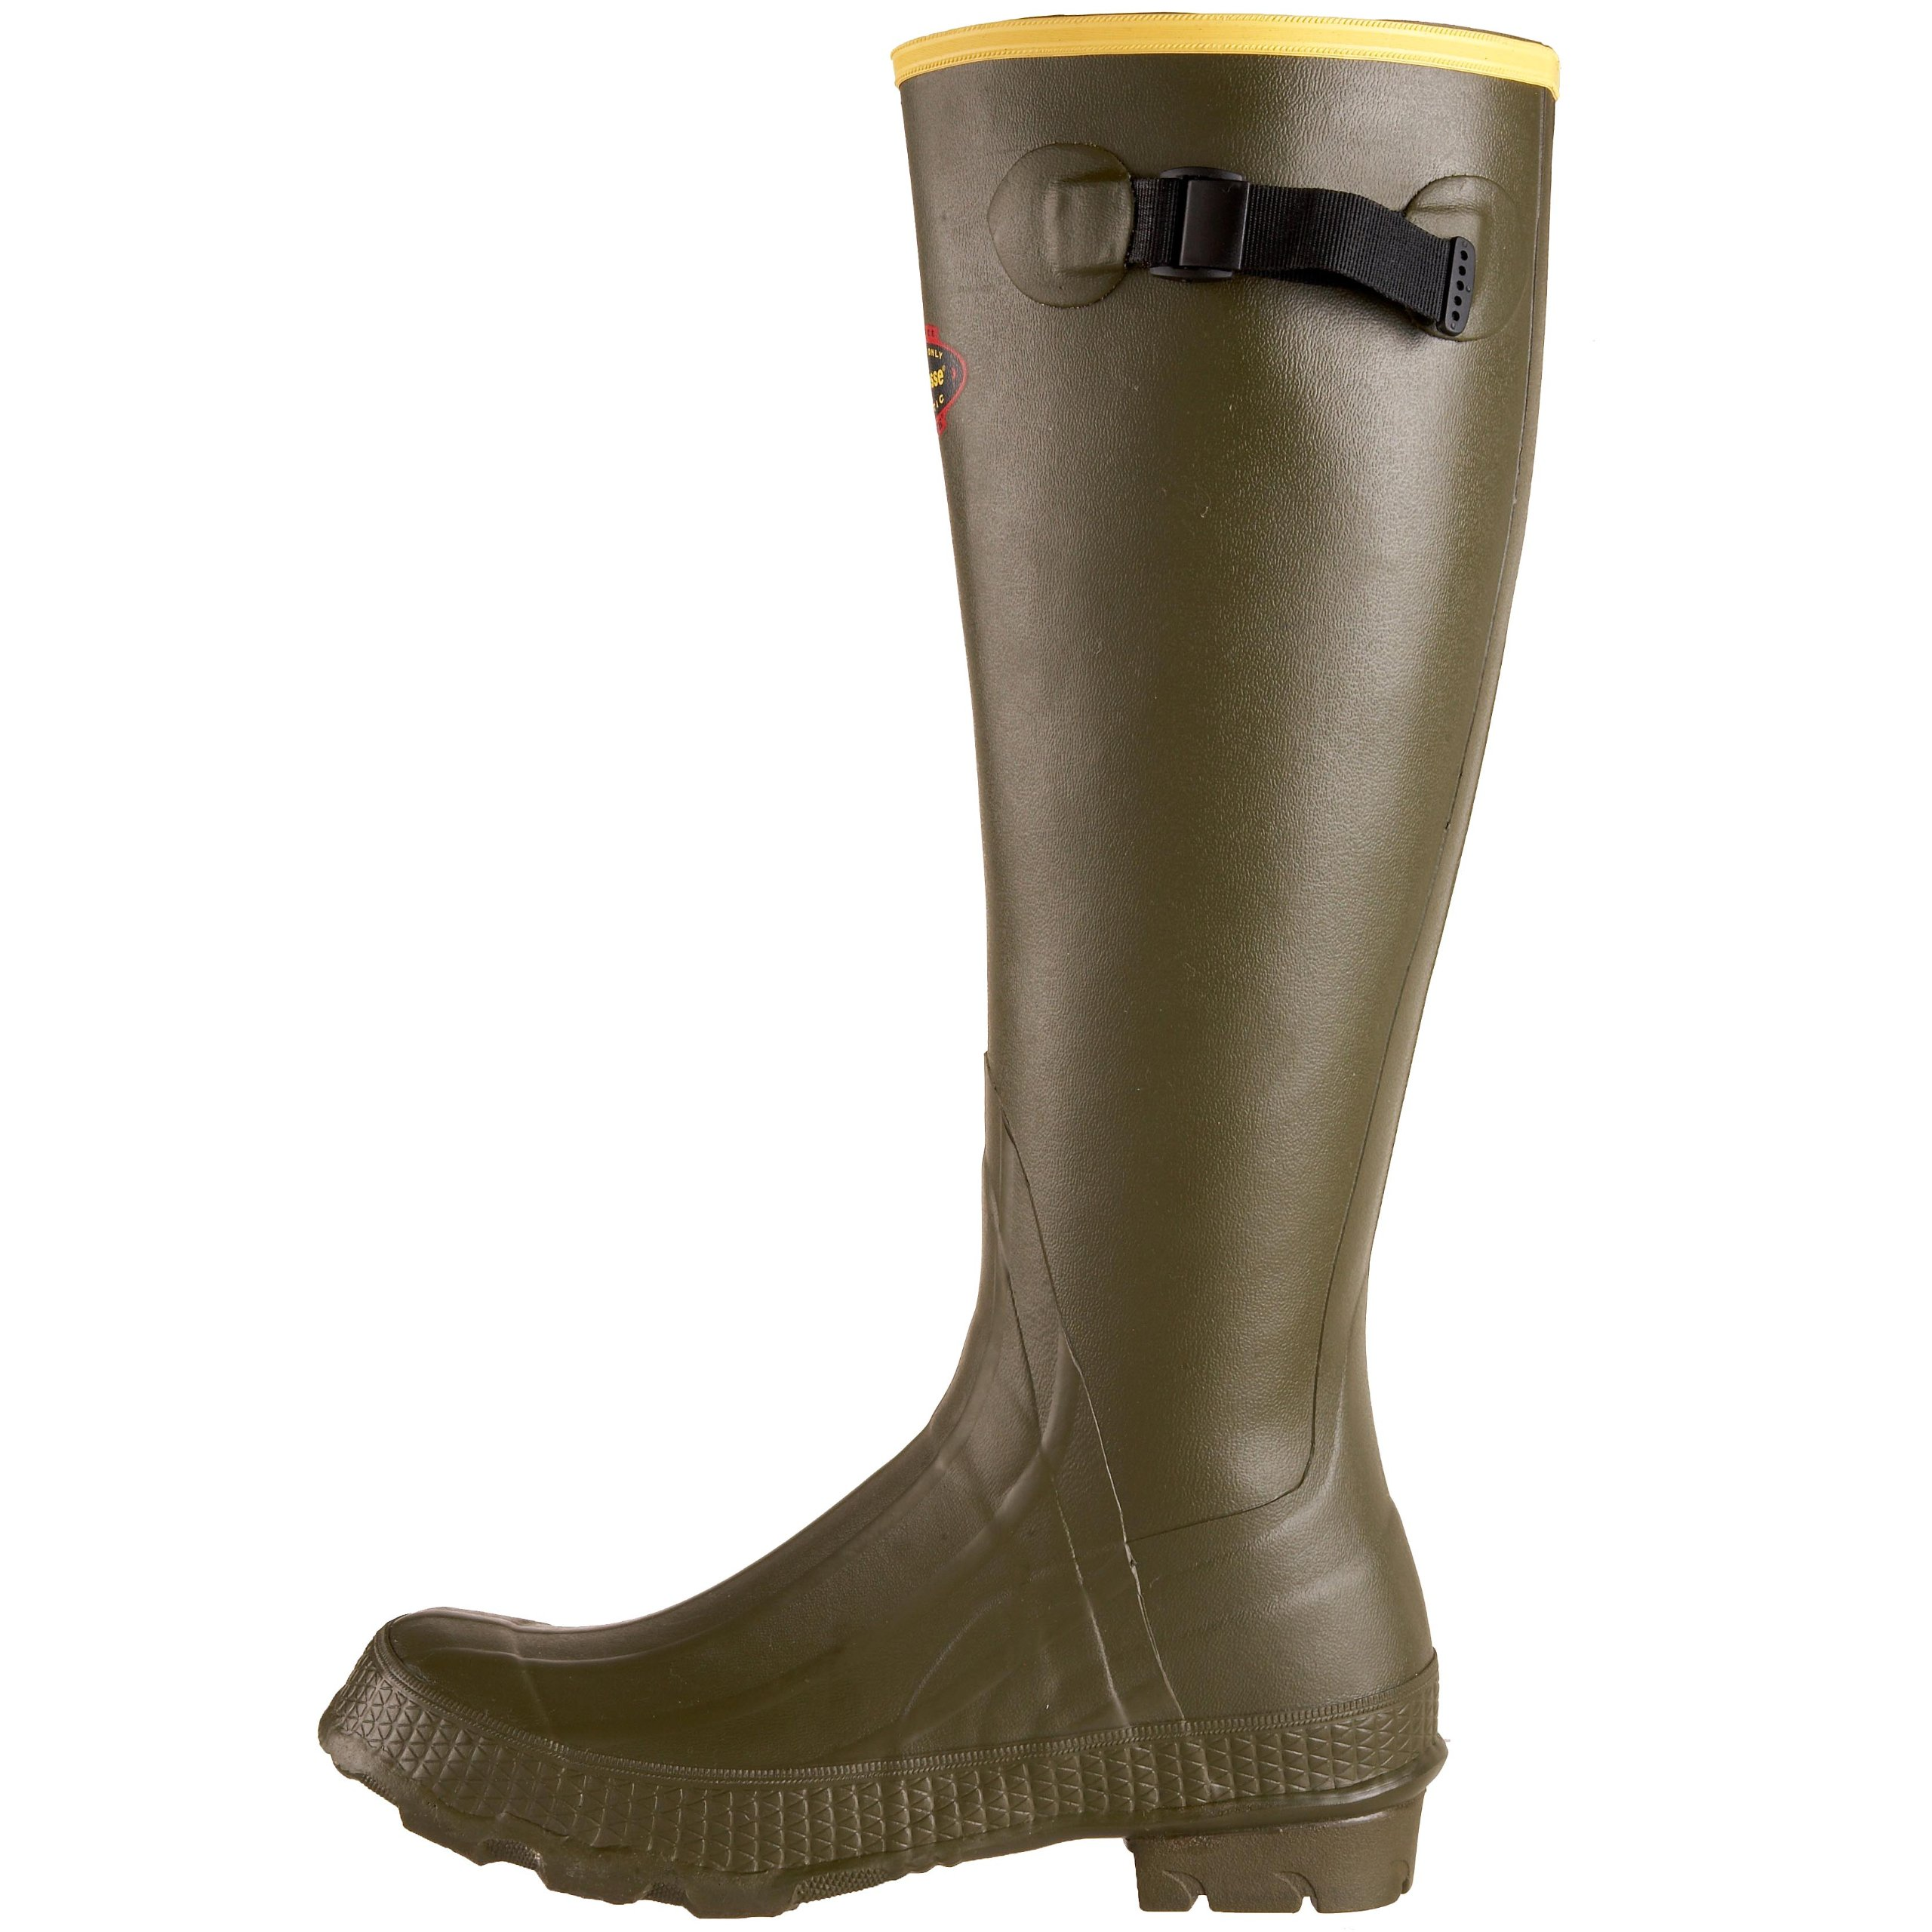 LaCrosse Men's Grange 18'' Hunting Boot,OD Green,15 M US by Lacrosse (Image #5)